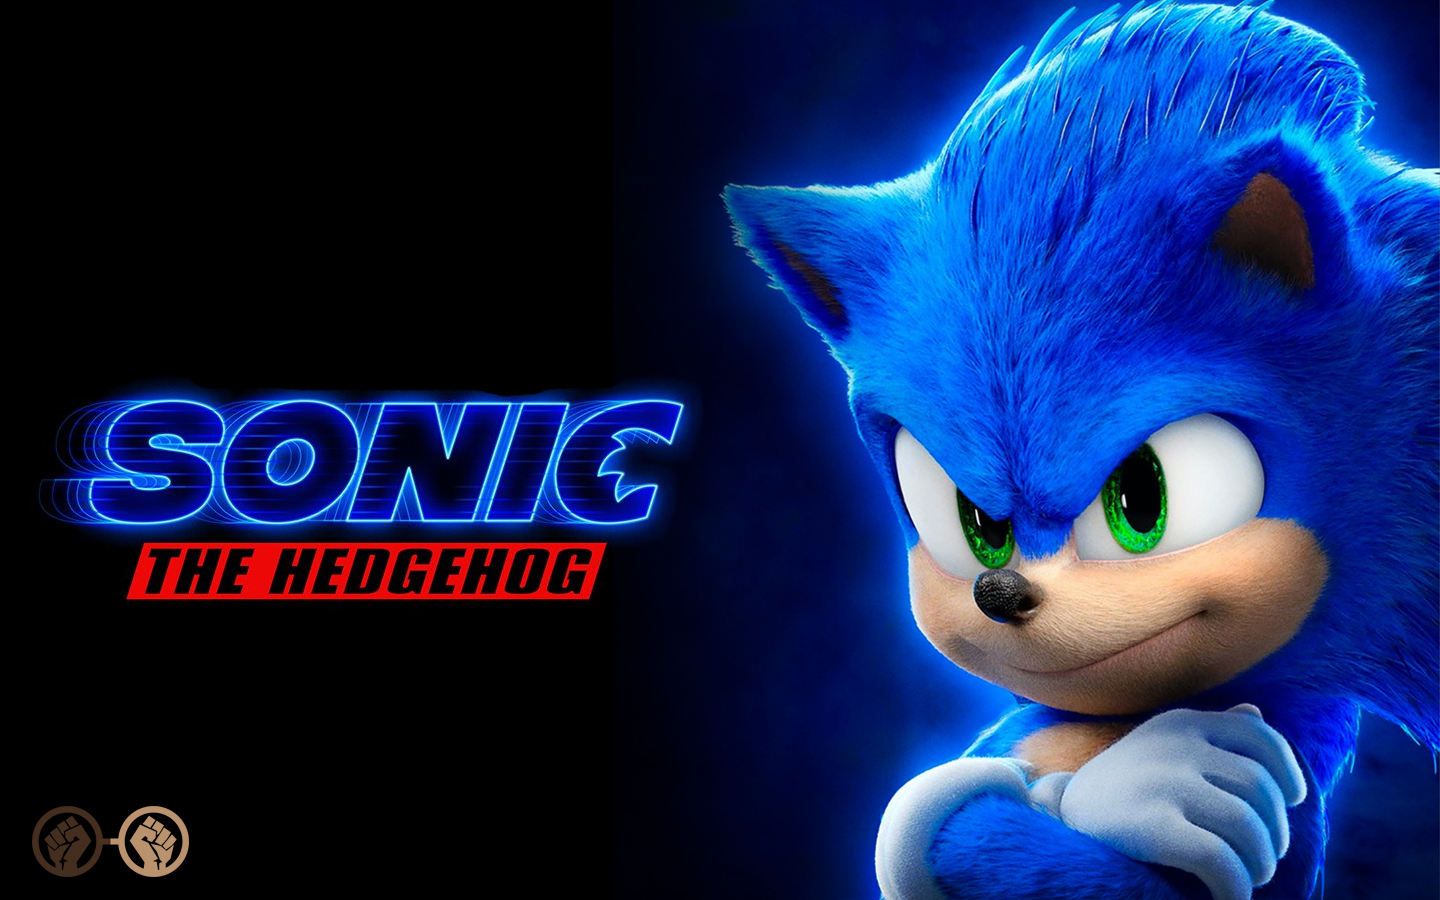 Sonic The Hedgehog Leaps Into Our Hearts But Doesn T Quite Reach Its Full Potential Review Geeks Of Color